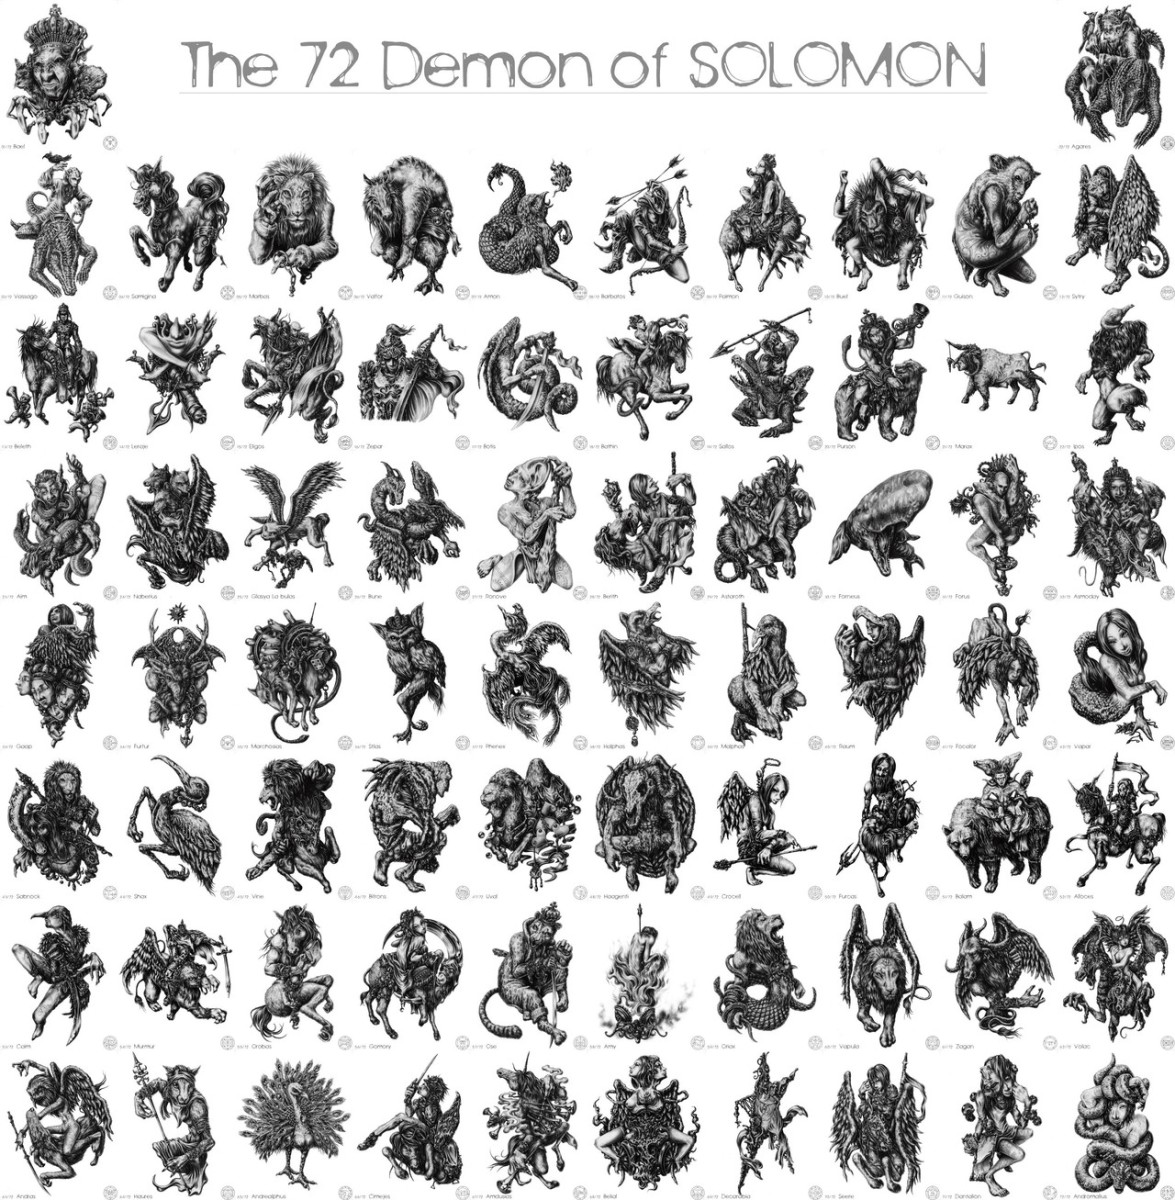 the demons of solomon: originally published at simamm.blogspot.com